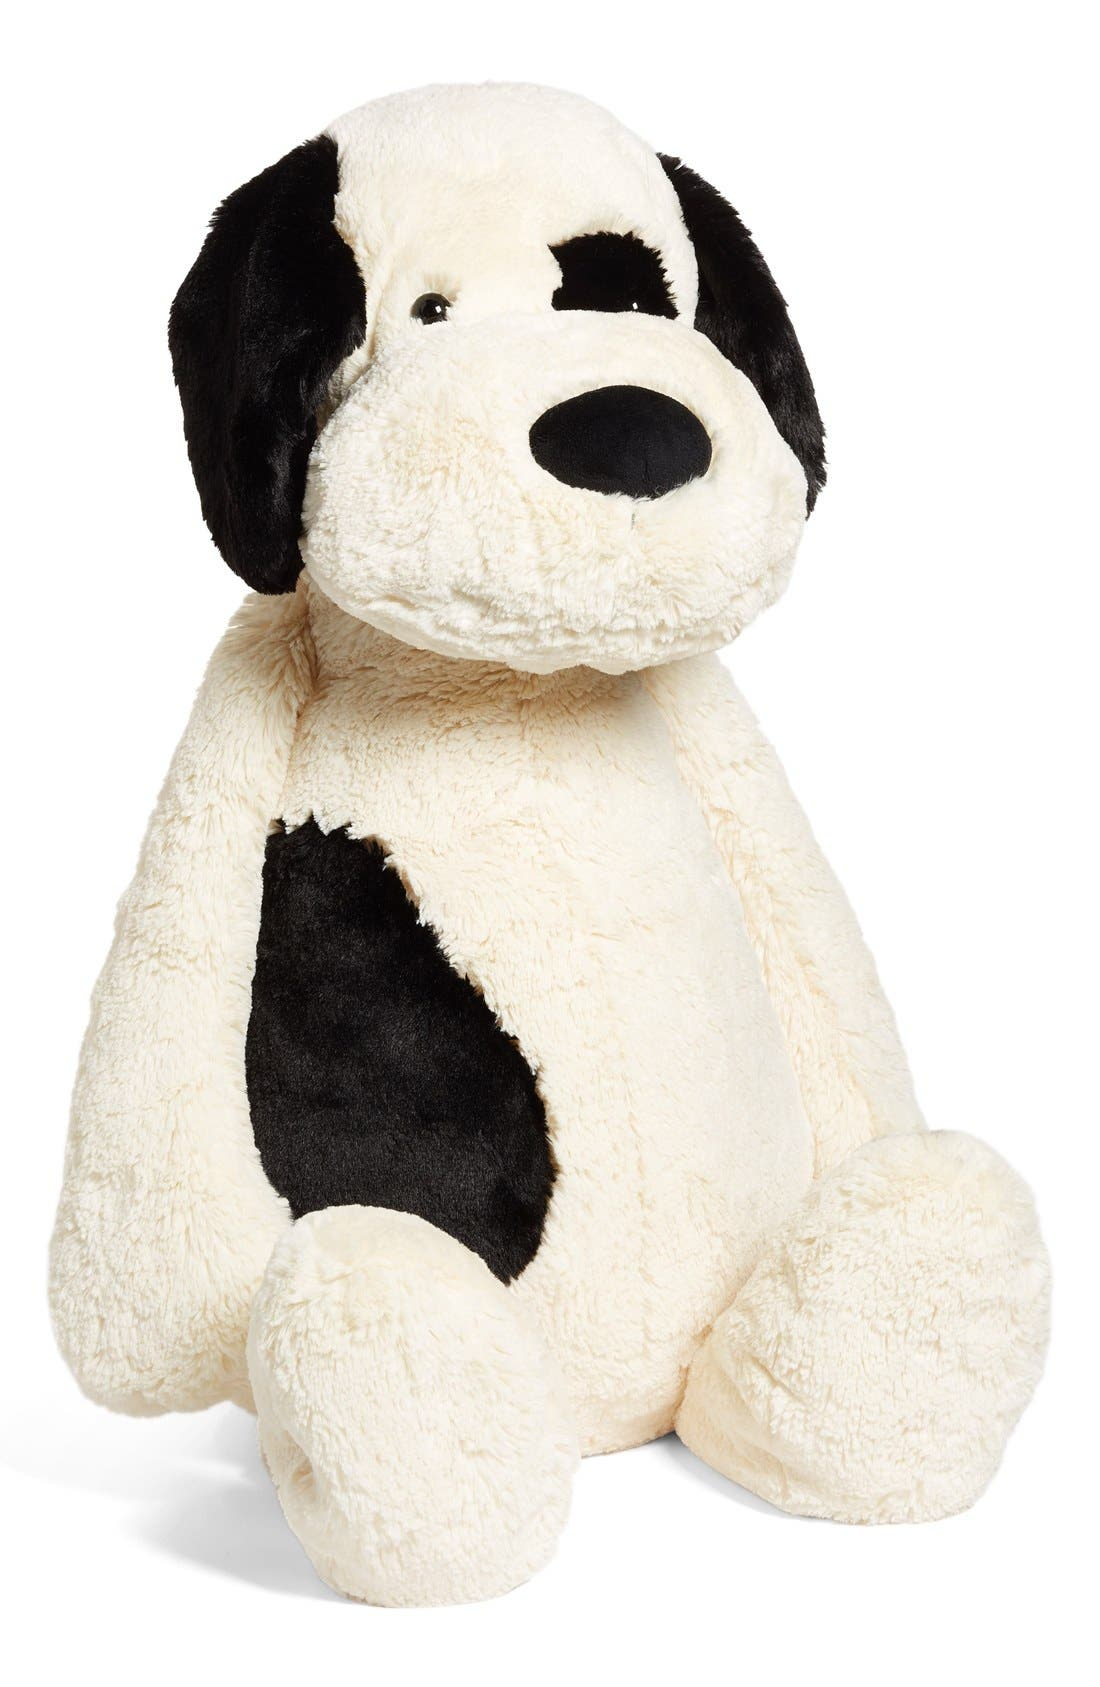 Main Image - Jellycat 'Really Big Bashful Puppy' Stuffed Animal